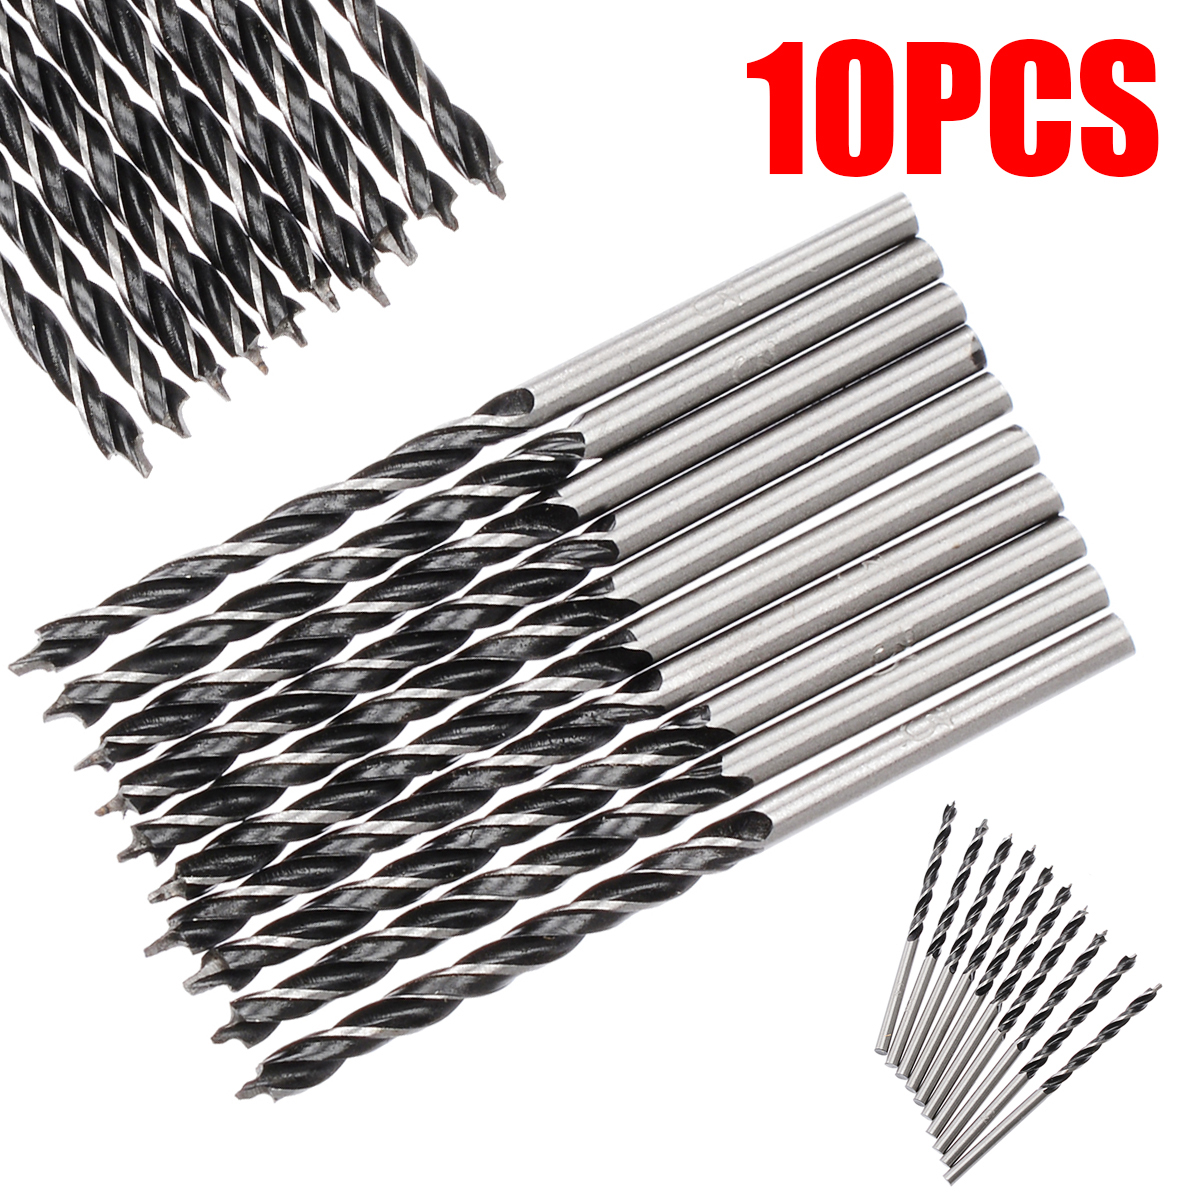 10Pcs 3mm Diameter Twist Drill Bit Wood Drill Bits with Center Point For Woodworking Hand Drilling Tool